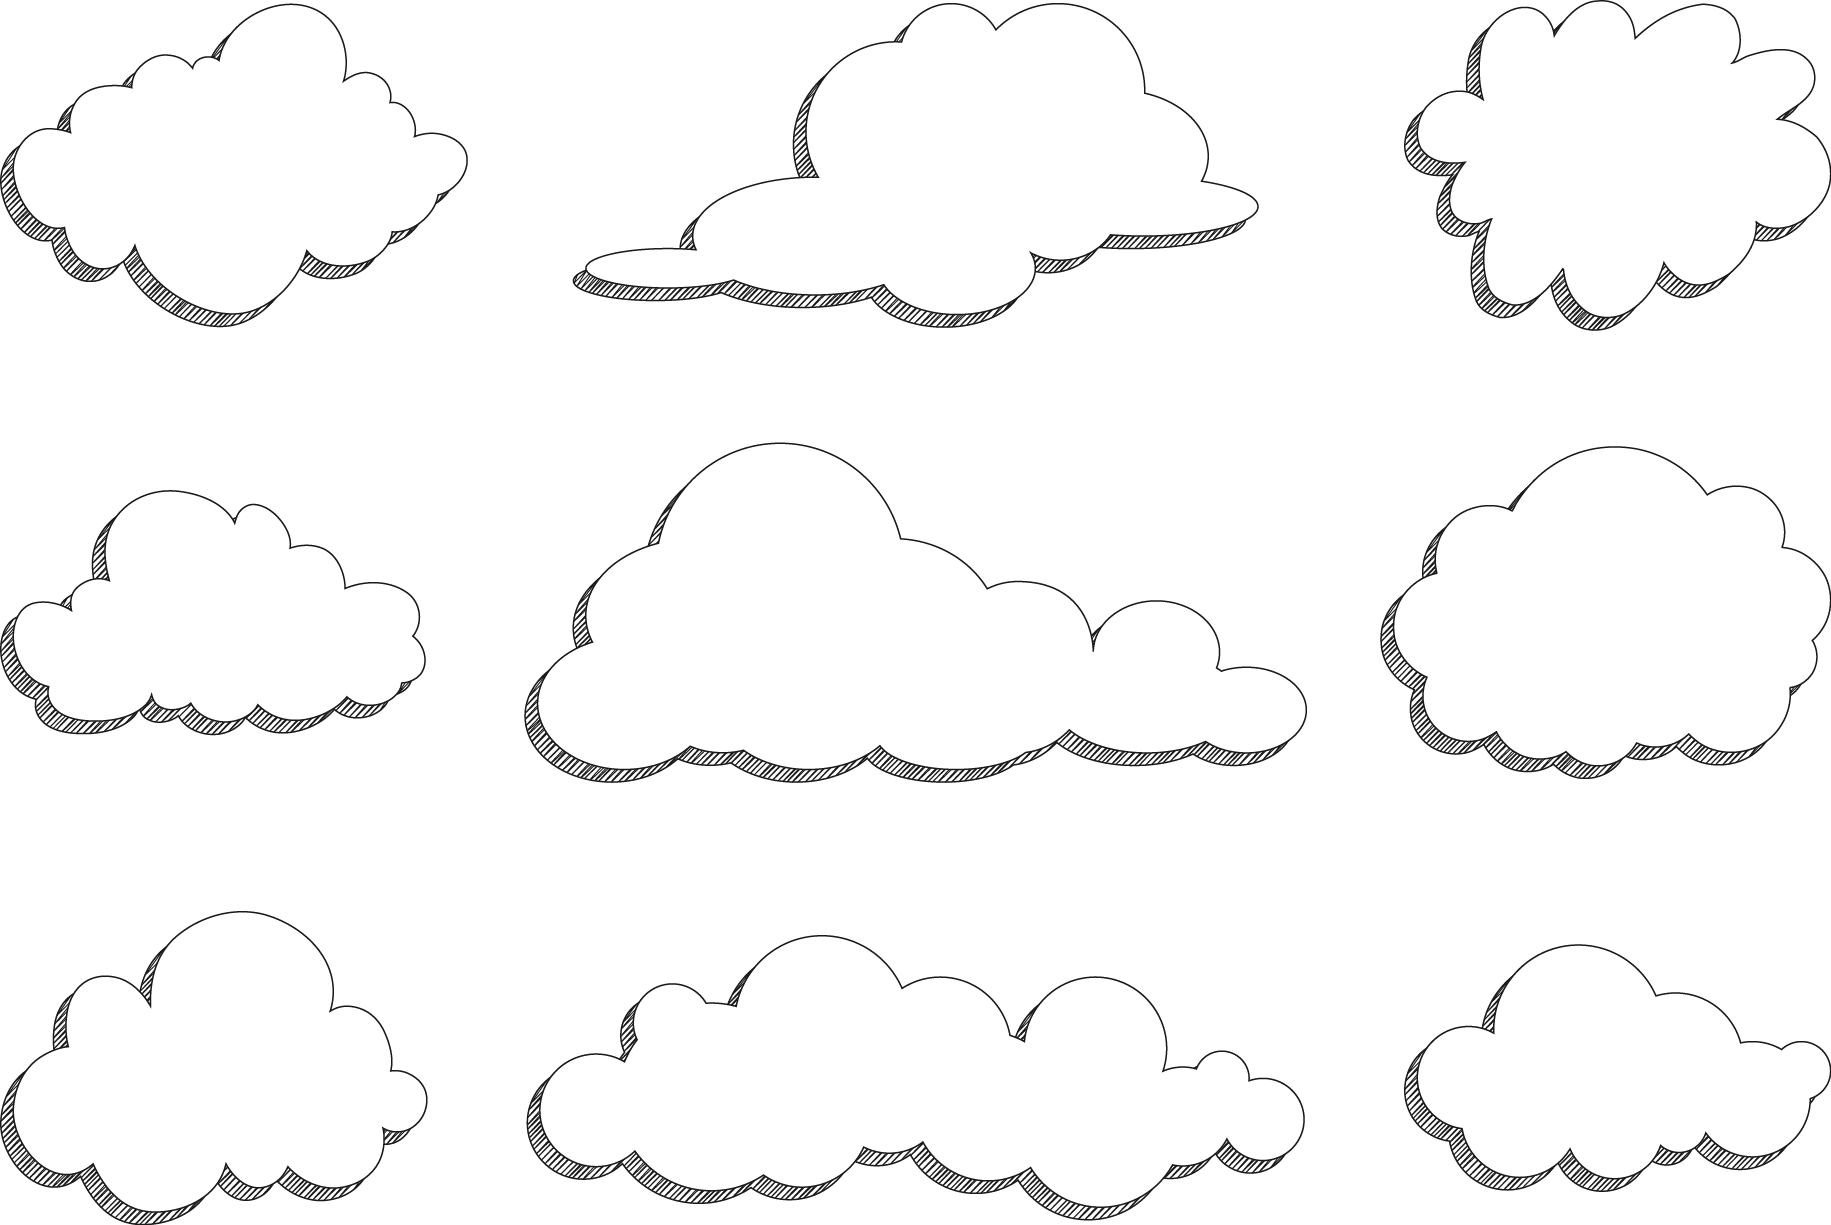 Cloud vector png. Clouds transprent free download